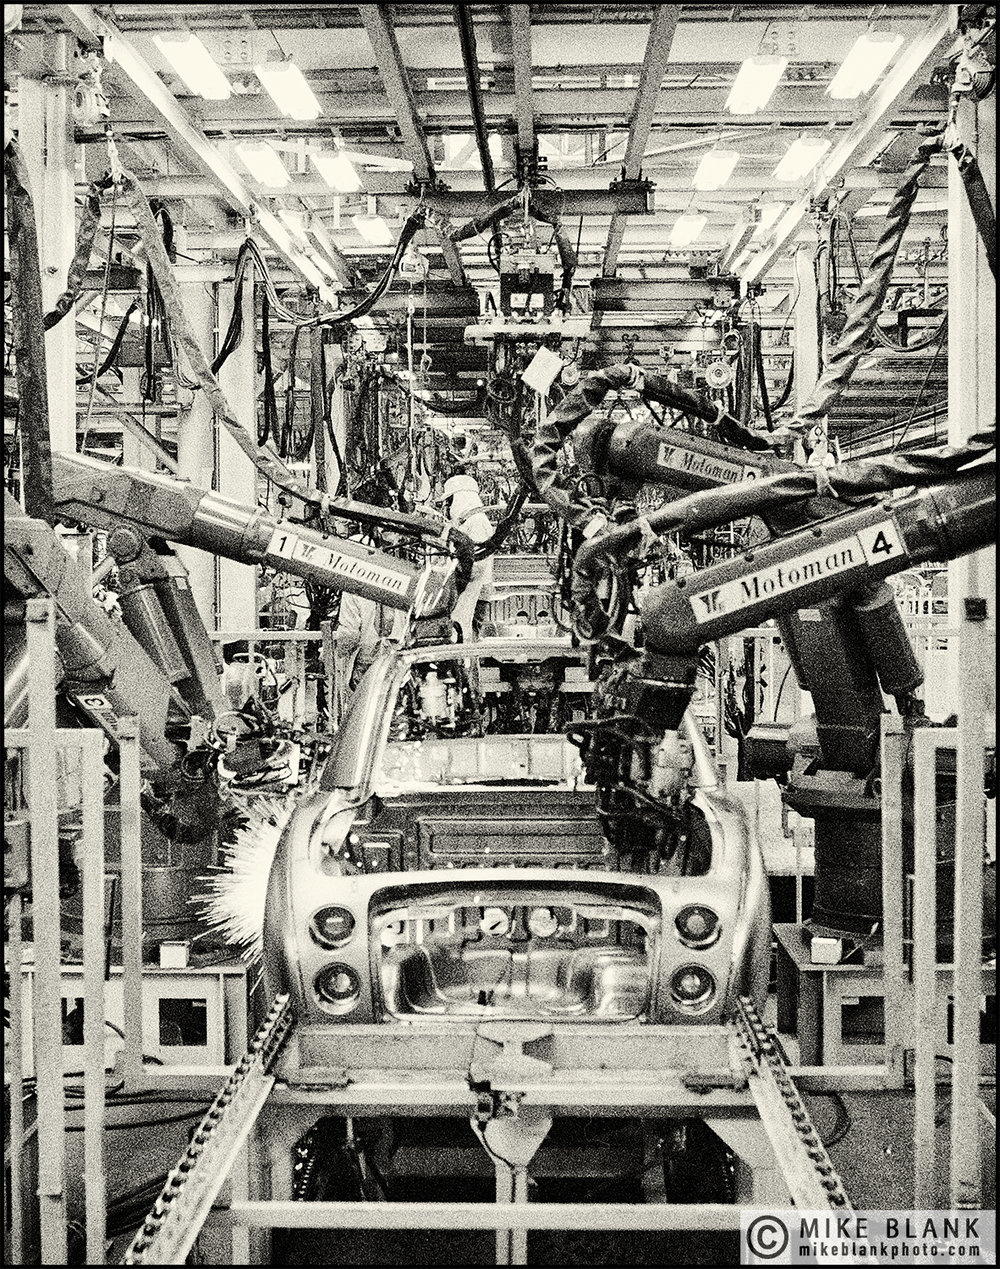 Nissan Figaro car production line, #3 Yokohama 1991